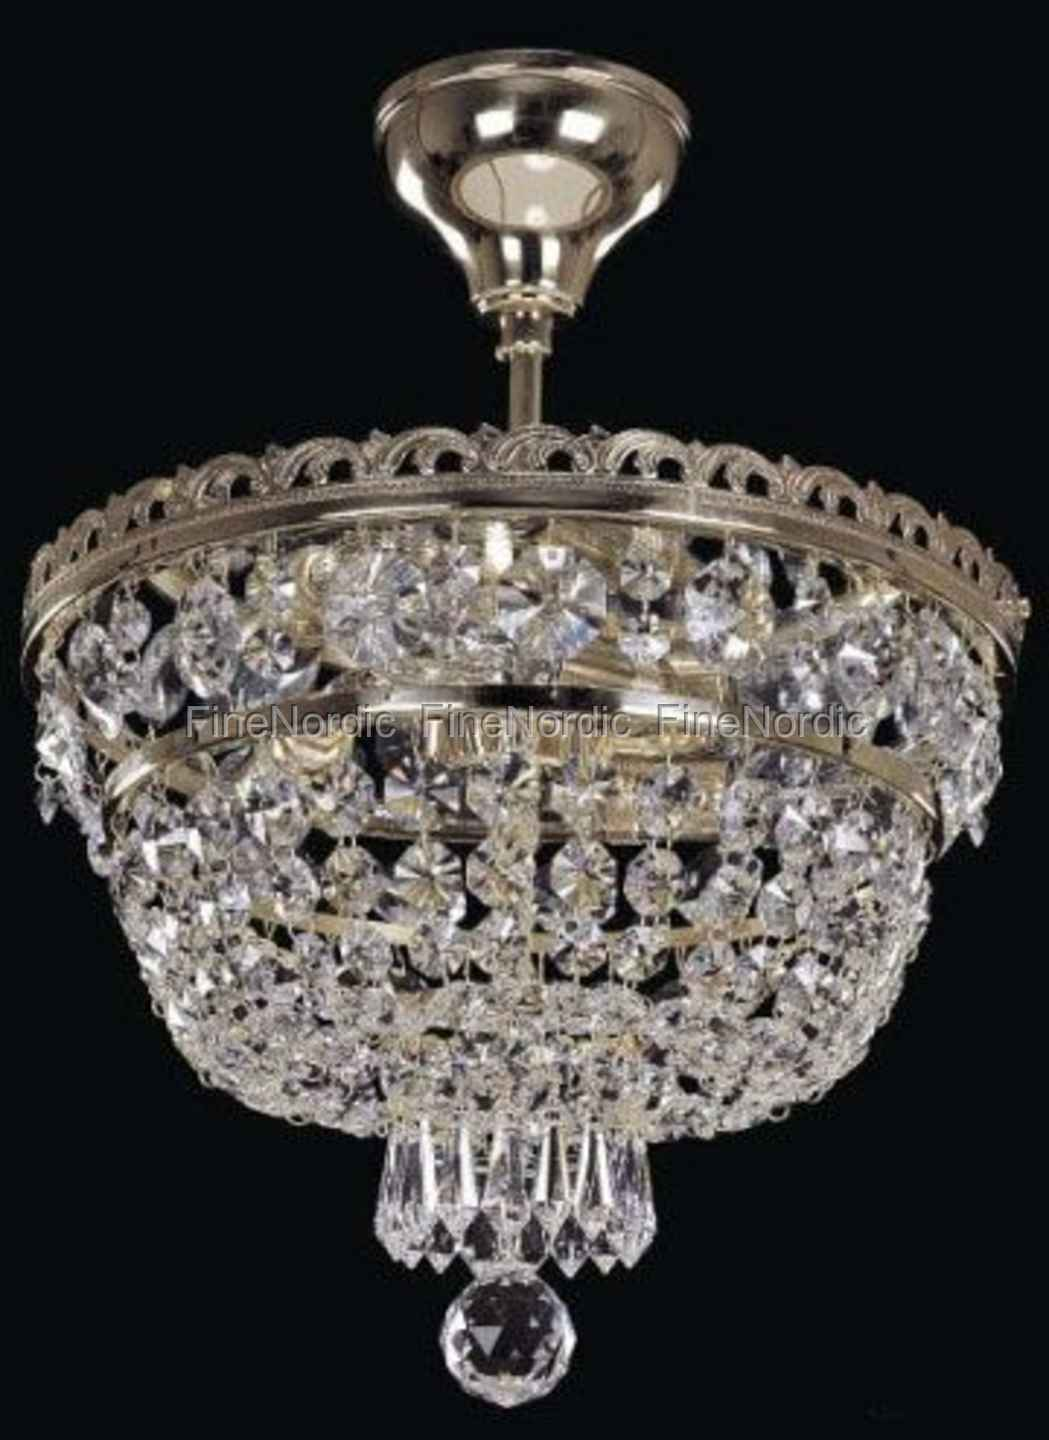 Elite bohemia crystal chandelier ceiling mount with 3 lights elite bohemia crystal chandelier ceiling mount with 3 lights silver finish bohemian crystal aloadofball Images